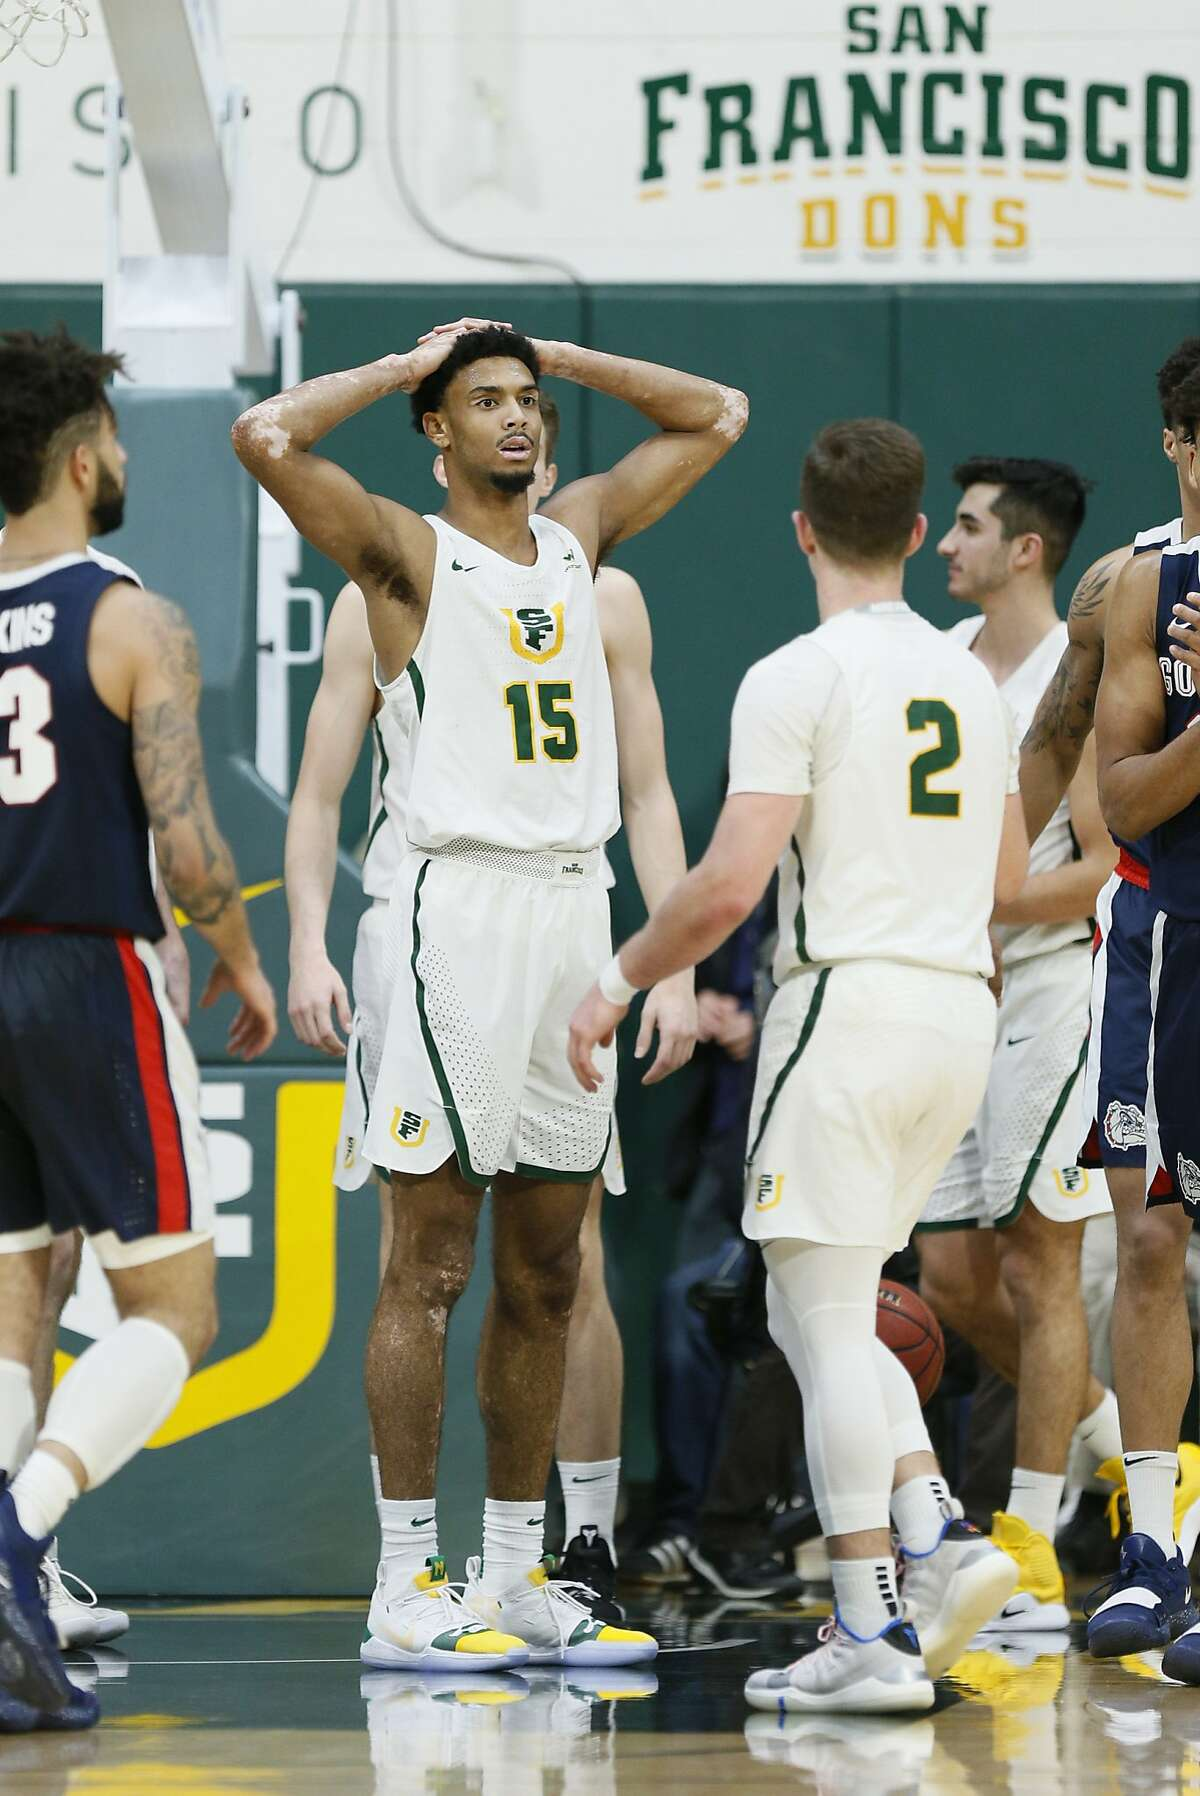 San Francisco Dons forward Nate Renfro (15) reacts after a foul is called against the Dons in the second half of an NCAA basketball game against the Gonzaga Bulldogs at Memorial Gym on Saturday, Jan. 12, 2019, in San Francisco, Calif.